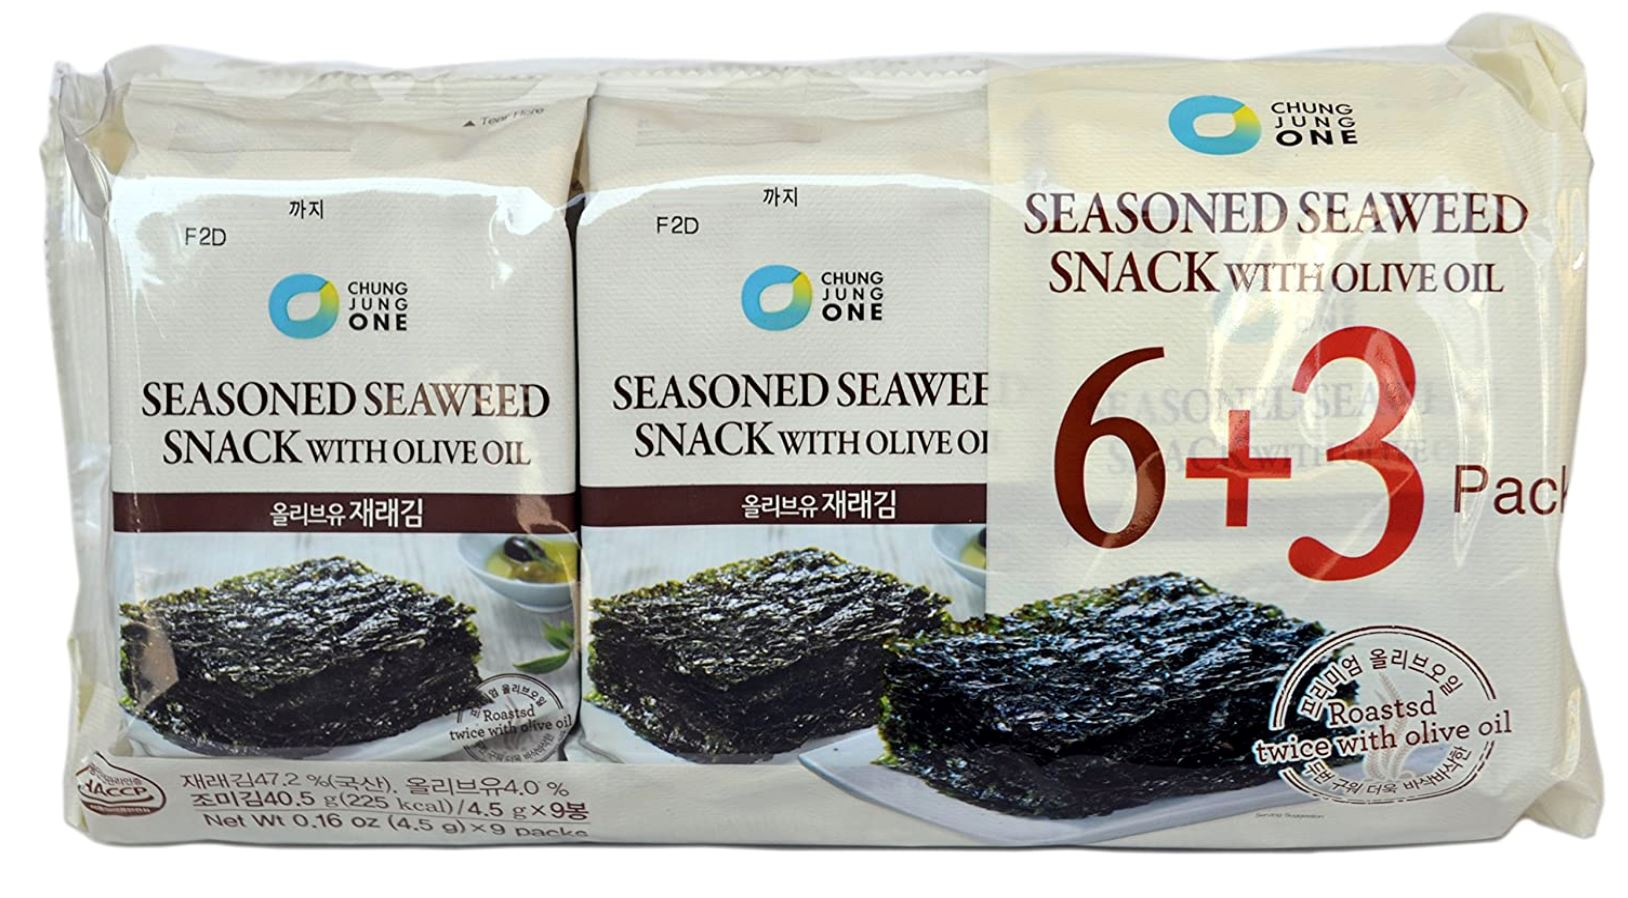 Chung Jung One Seasoned Seaweed 5g x 9pack Chips & Snack Chung Jung One